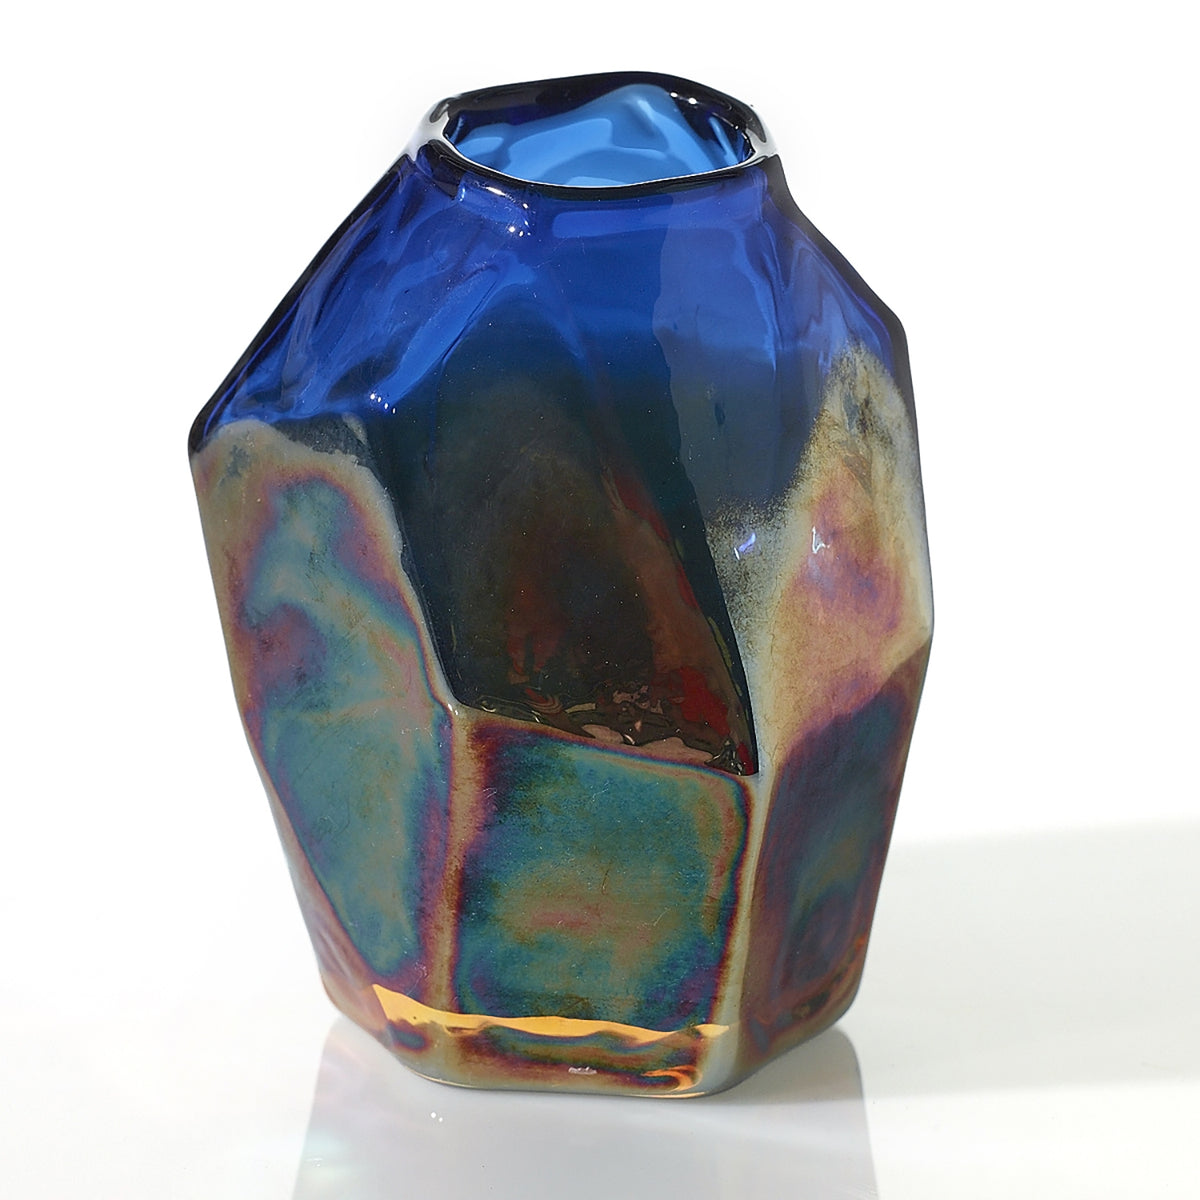 Studio Vase - Colored Glass - 4 x 3.5 x 4.75